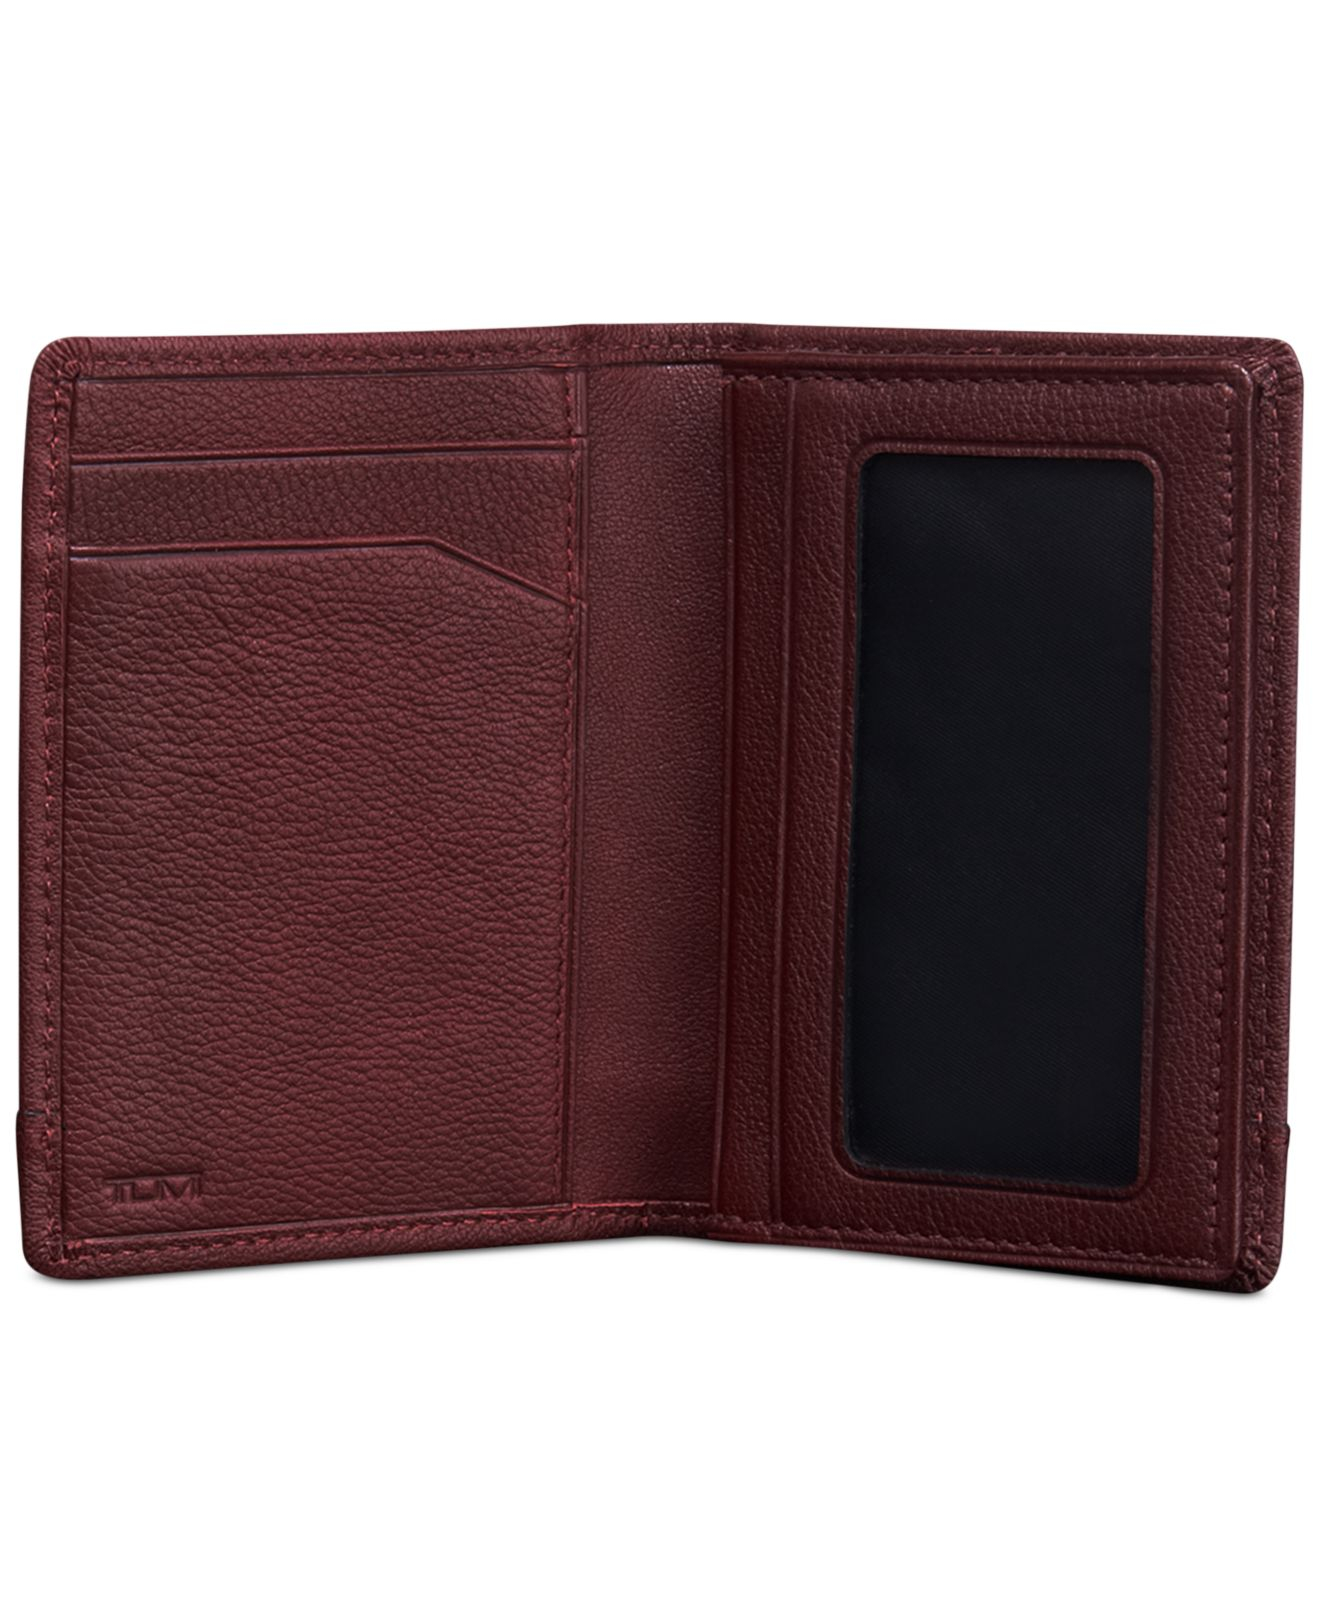 Lyst - Tumi Rivington Gusseted Card Case Id Wallet in Red for Men